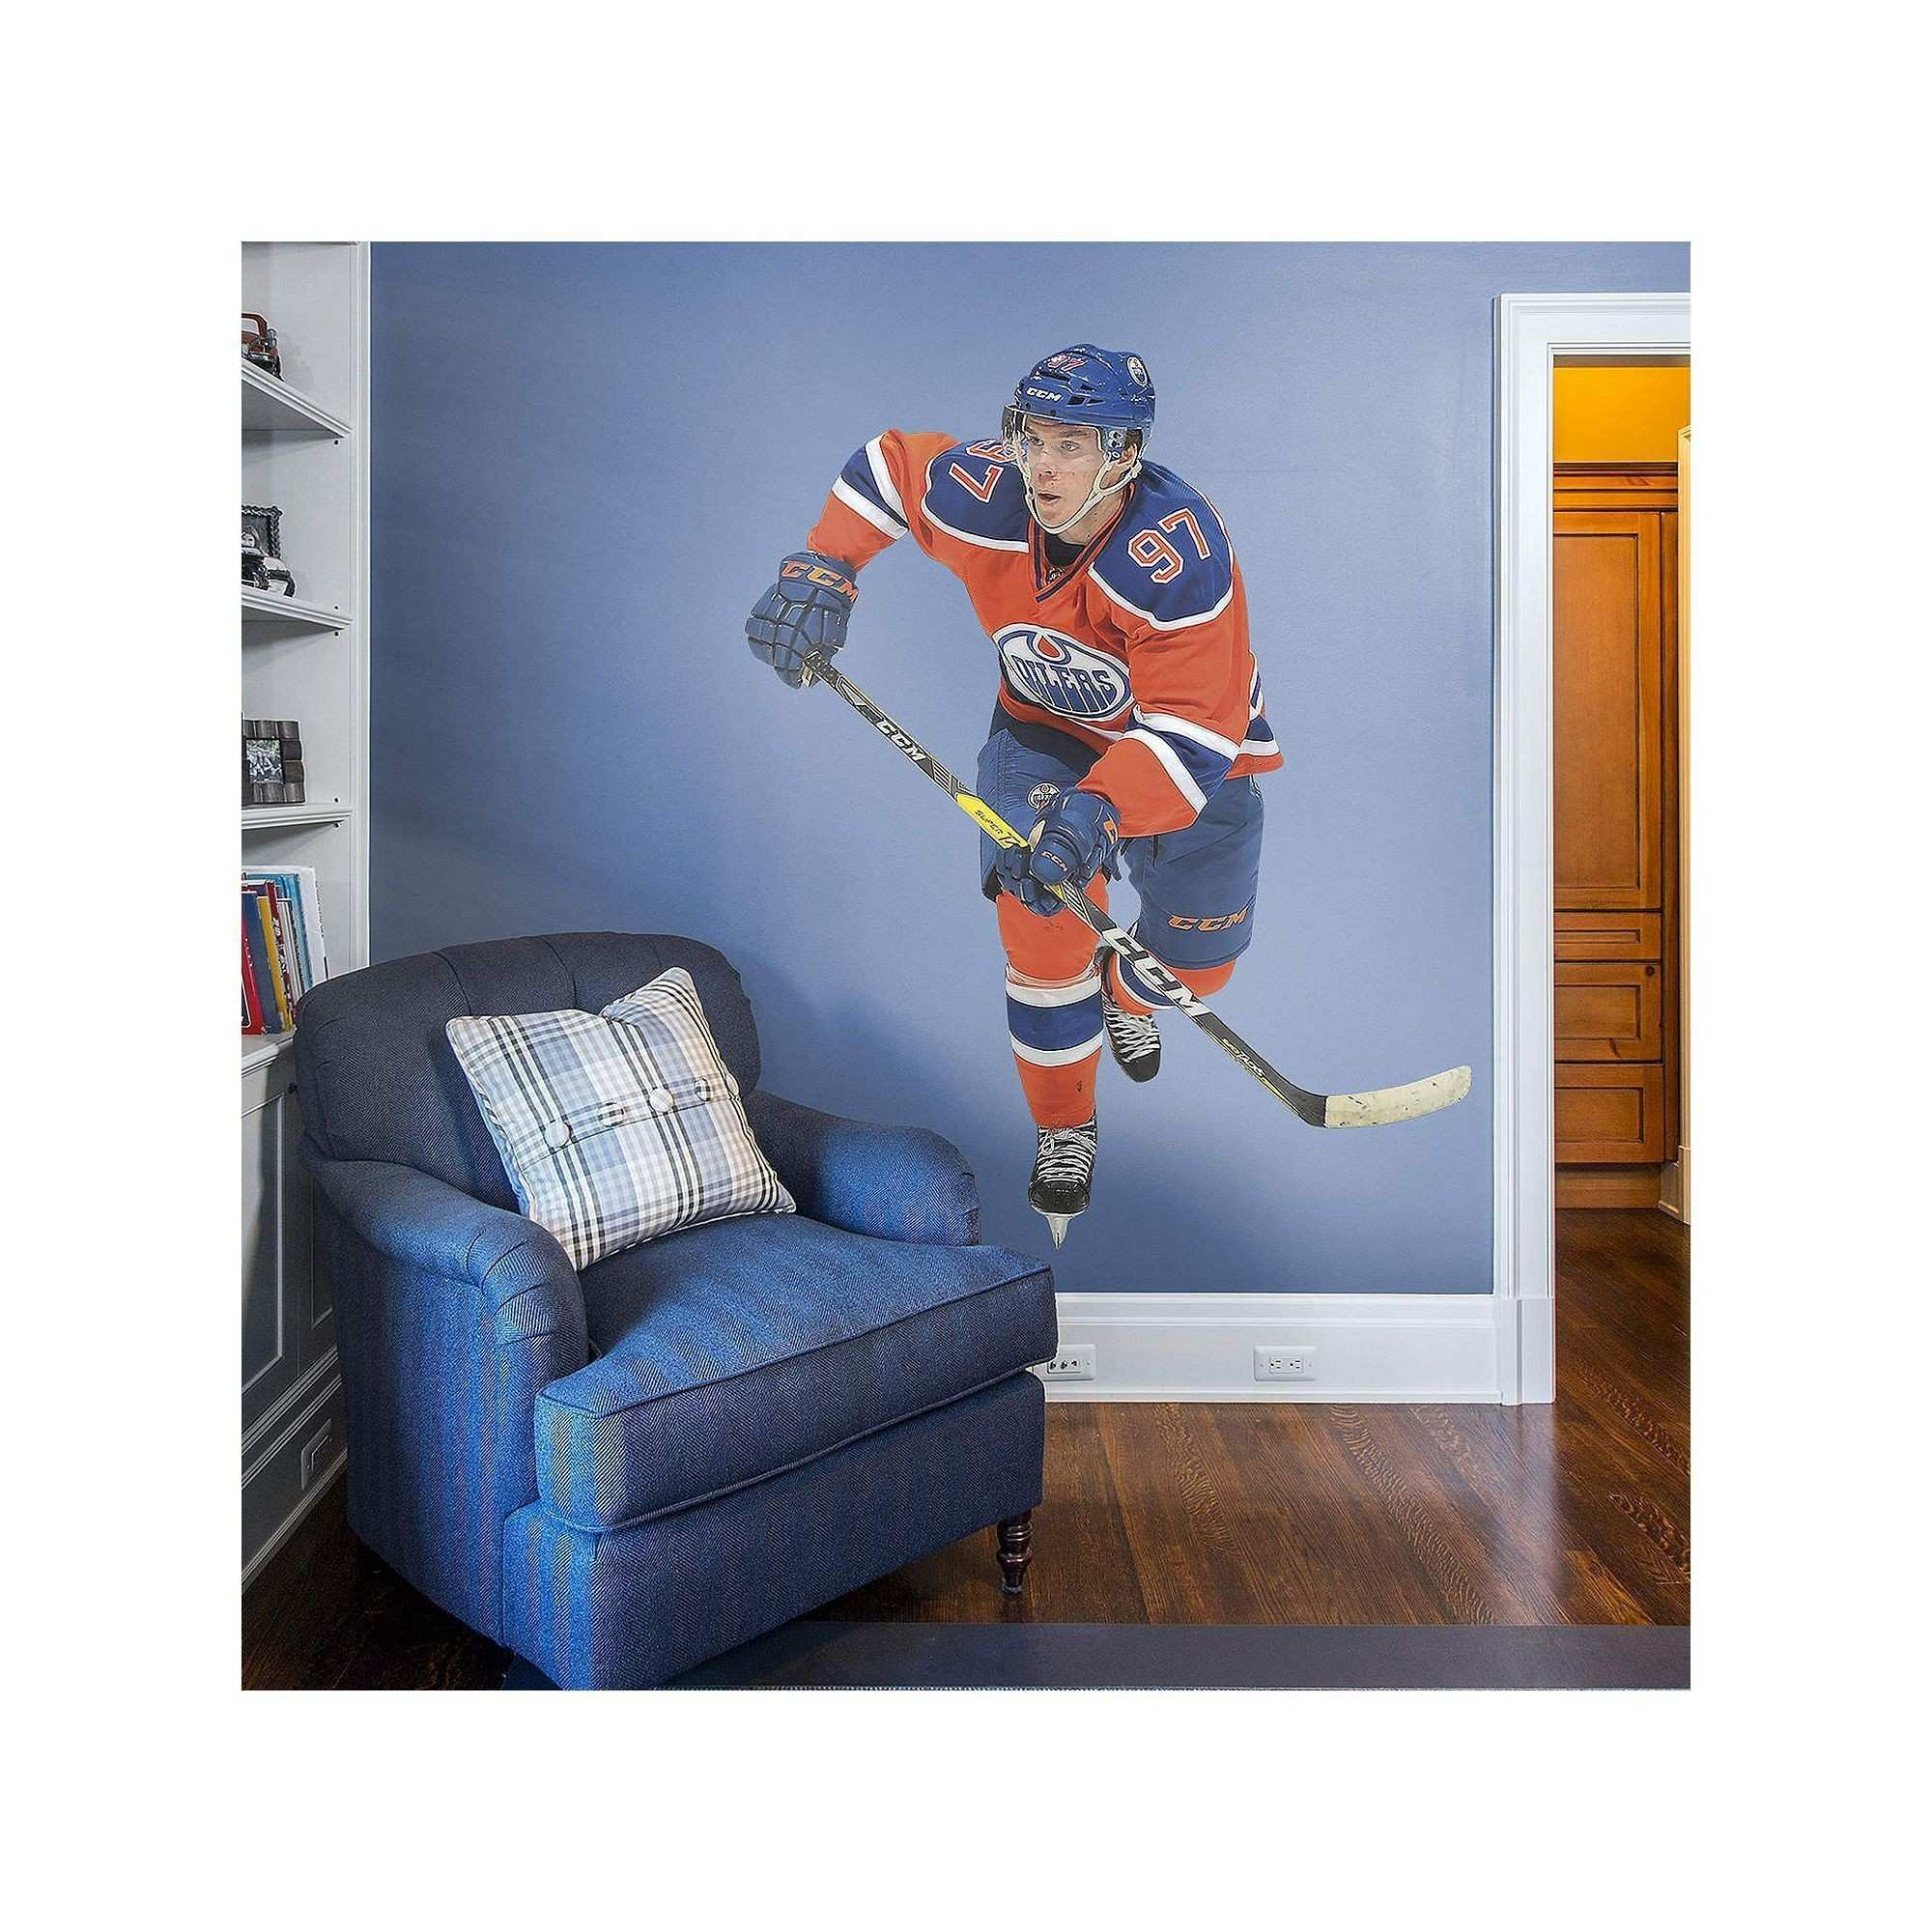 Awesome Nhl Decals for Walls